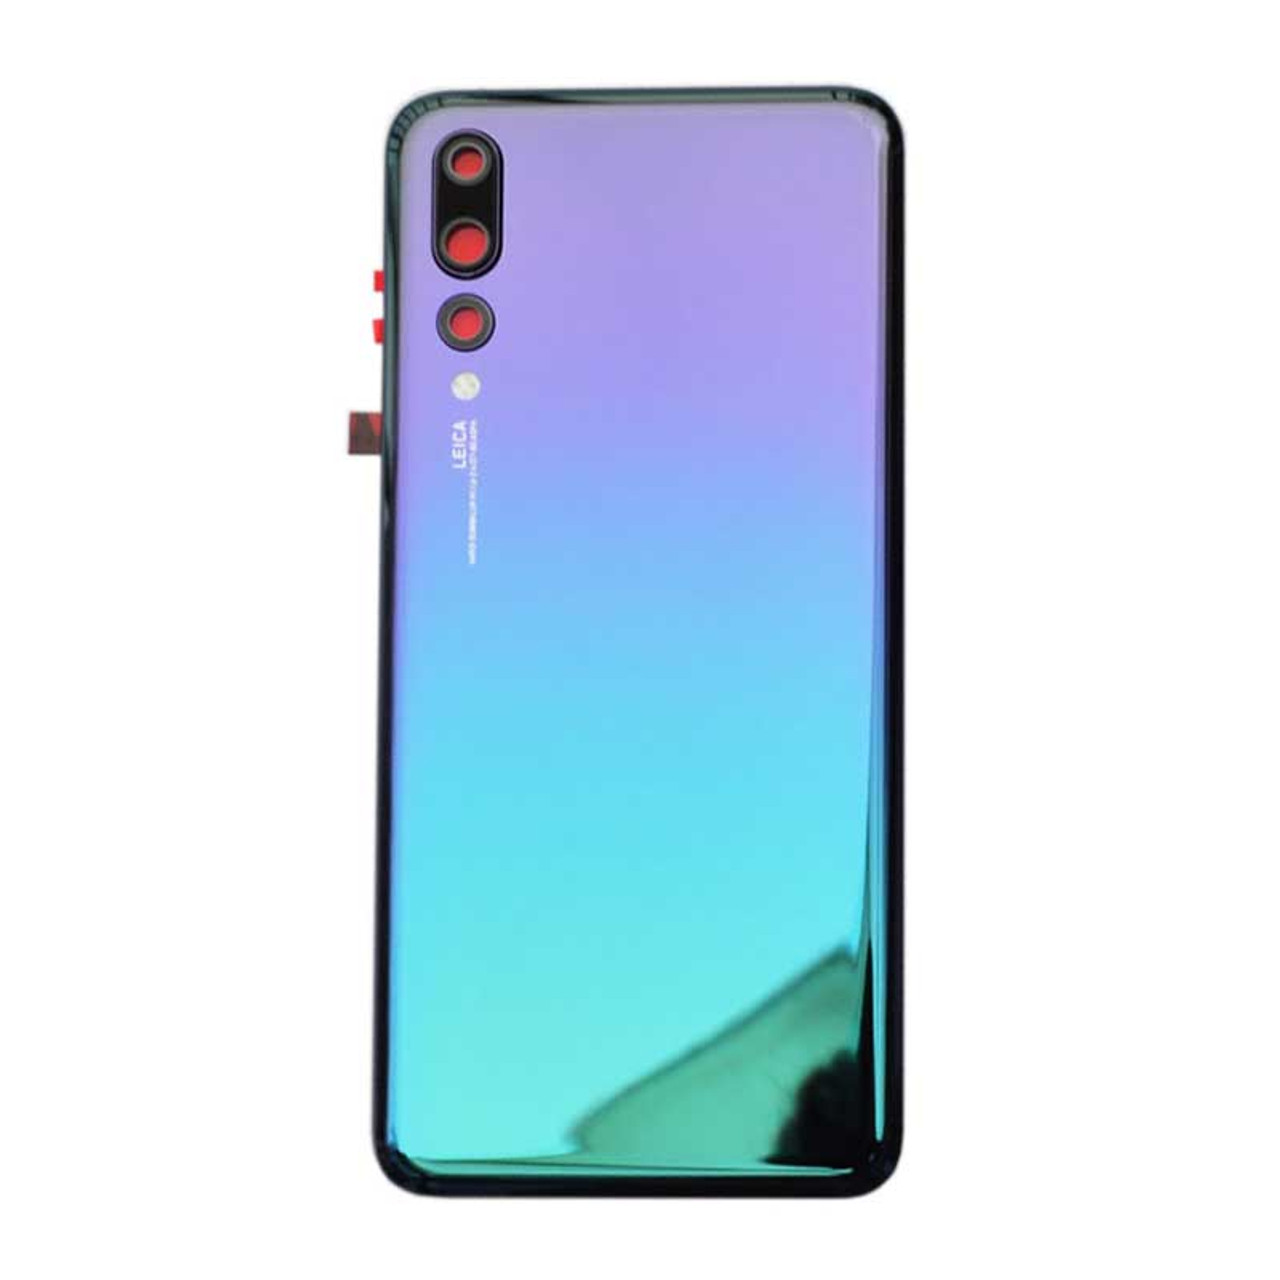 Huawei P20 Pro Back Housing Cover with Camera Lens -Twilight